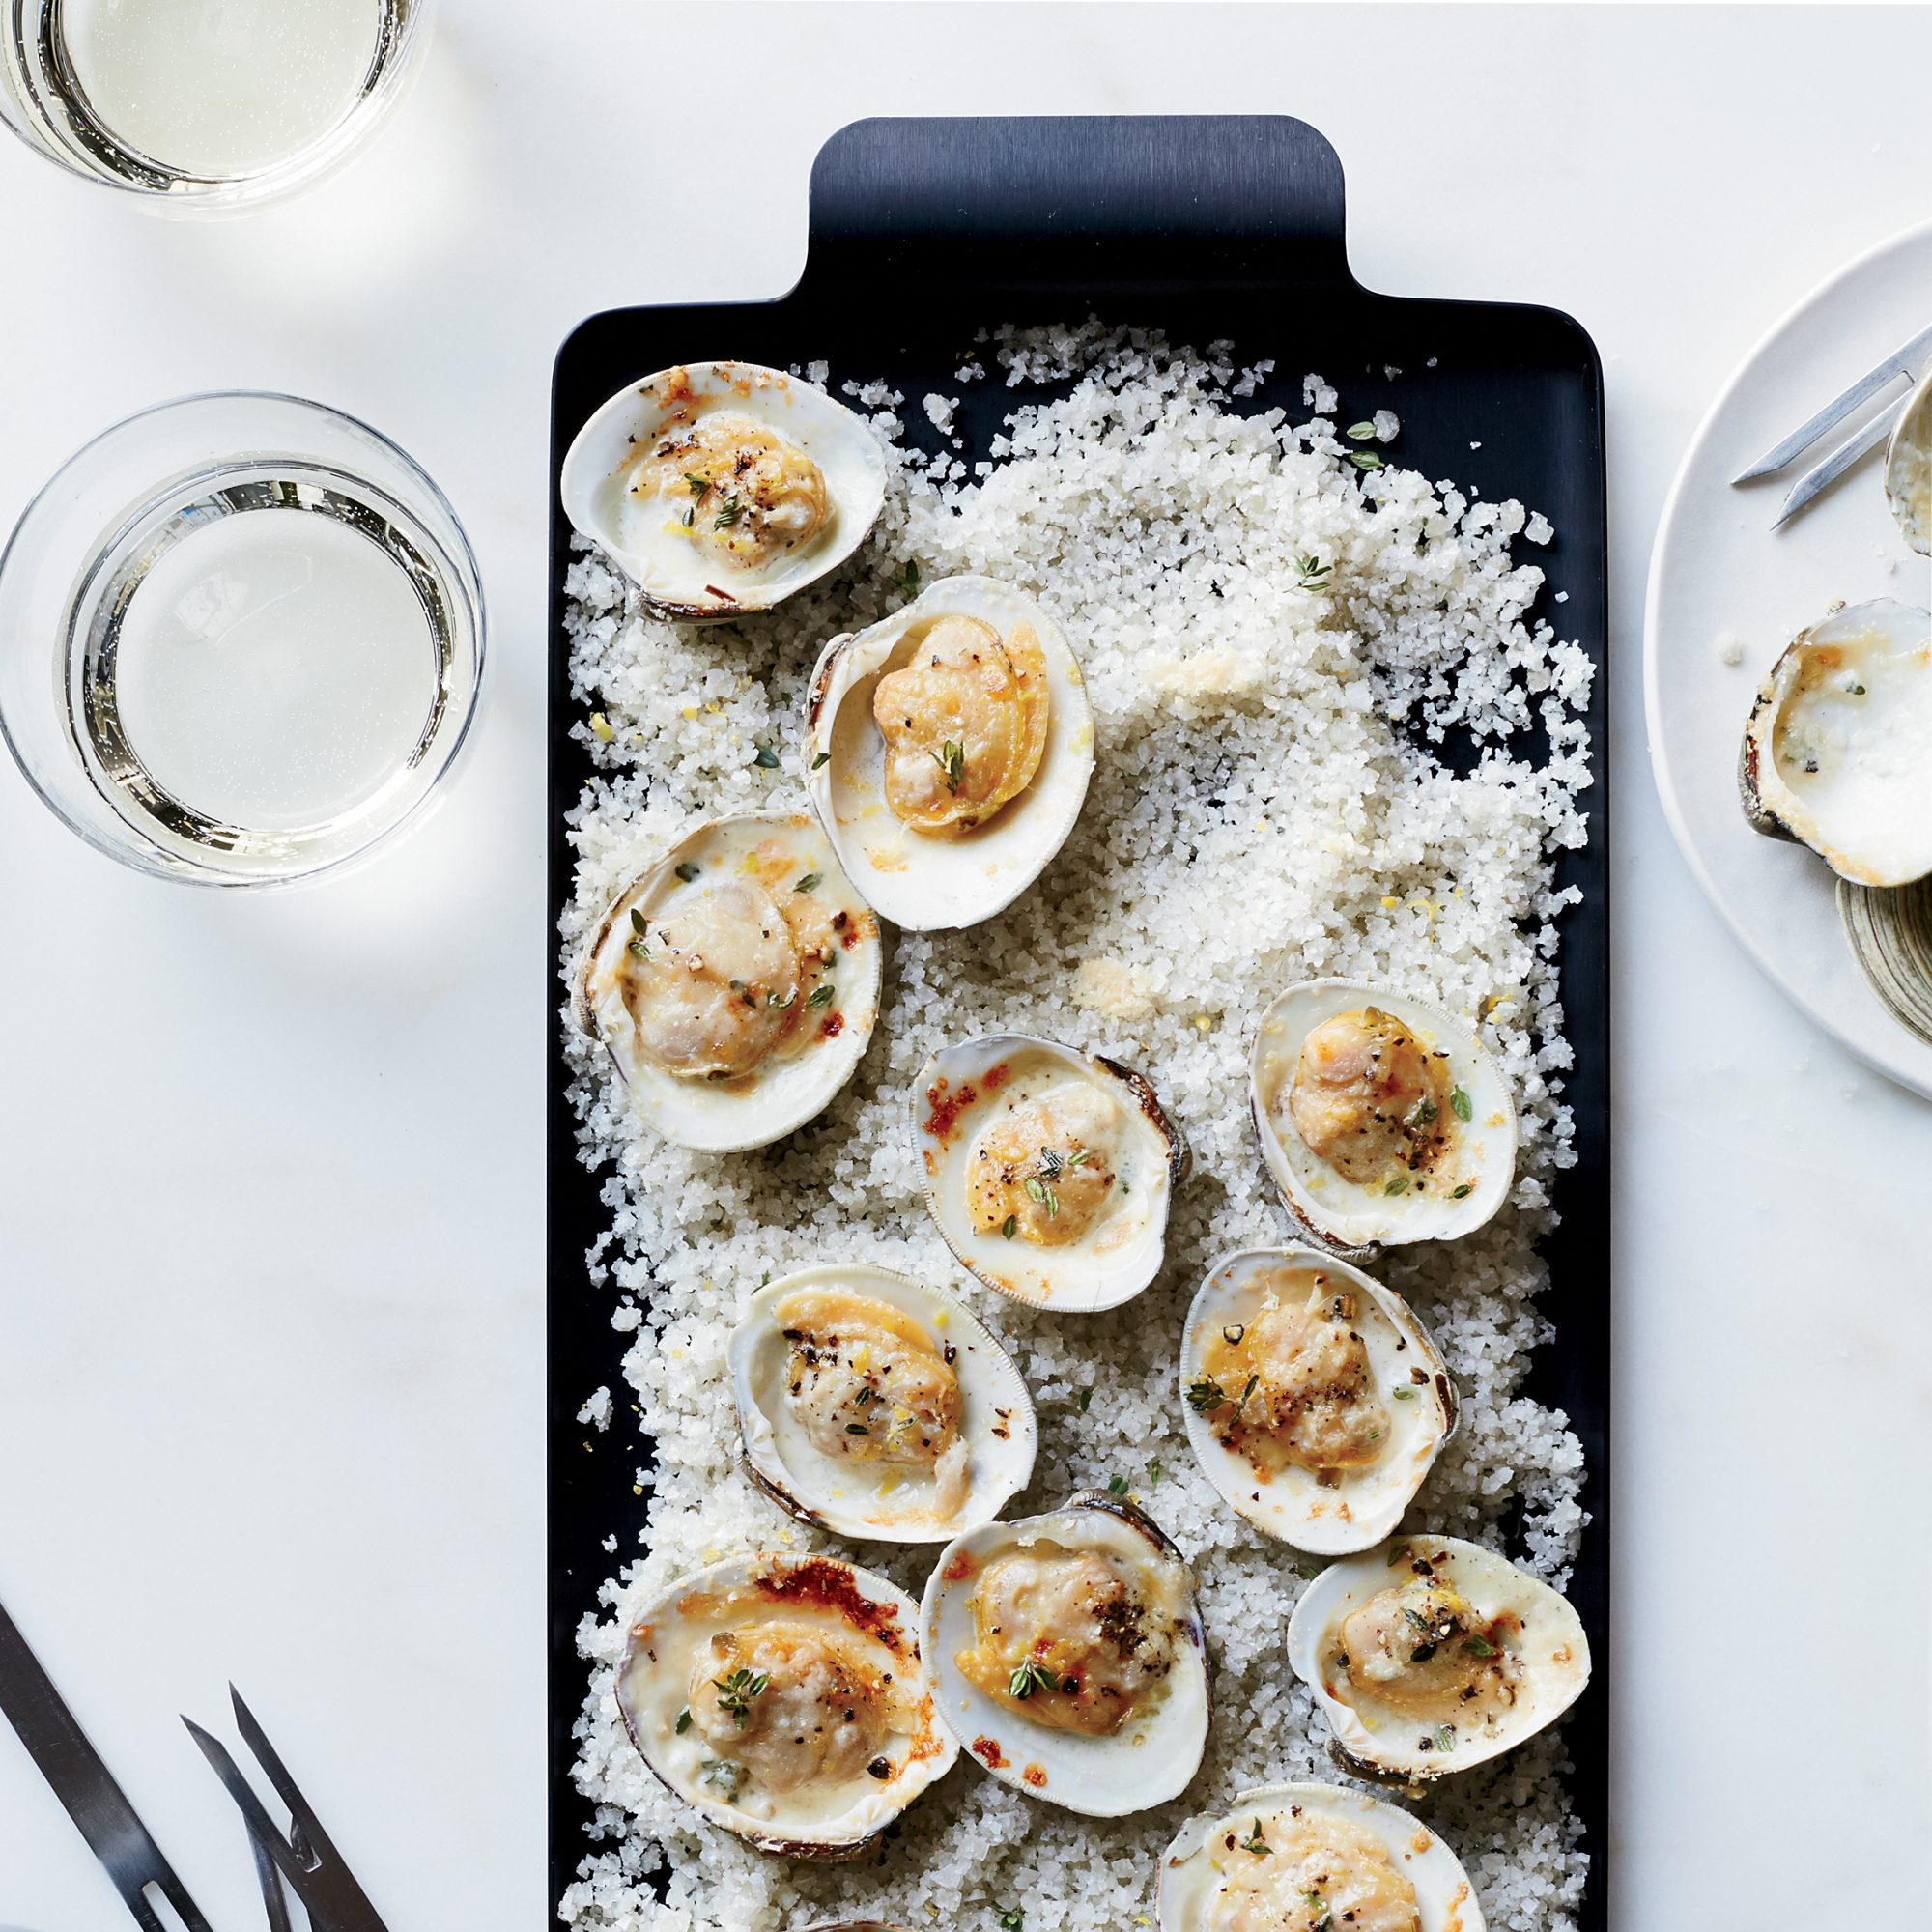 201404-r-clams-broiled-with-lemon-thyme-and-parmesan.jpg